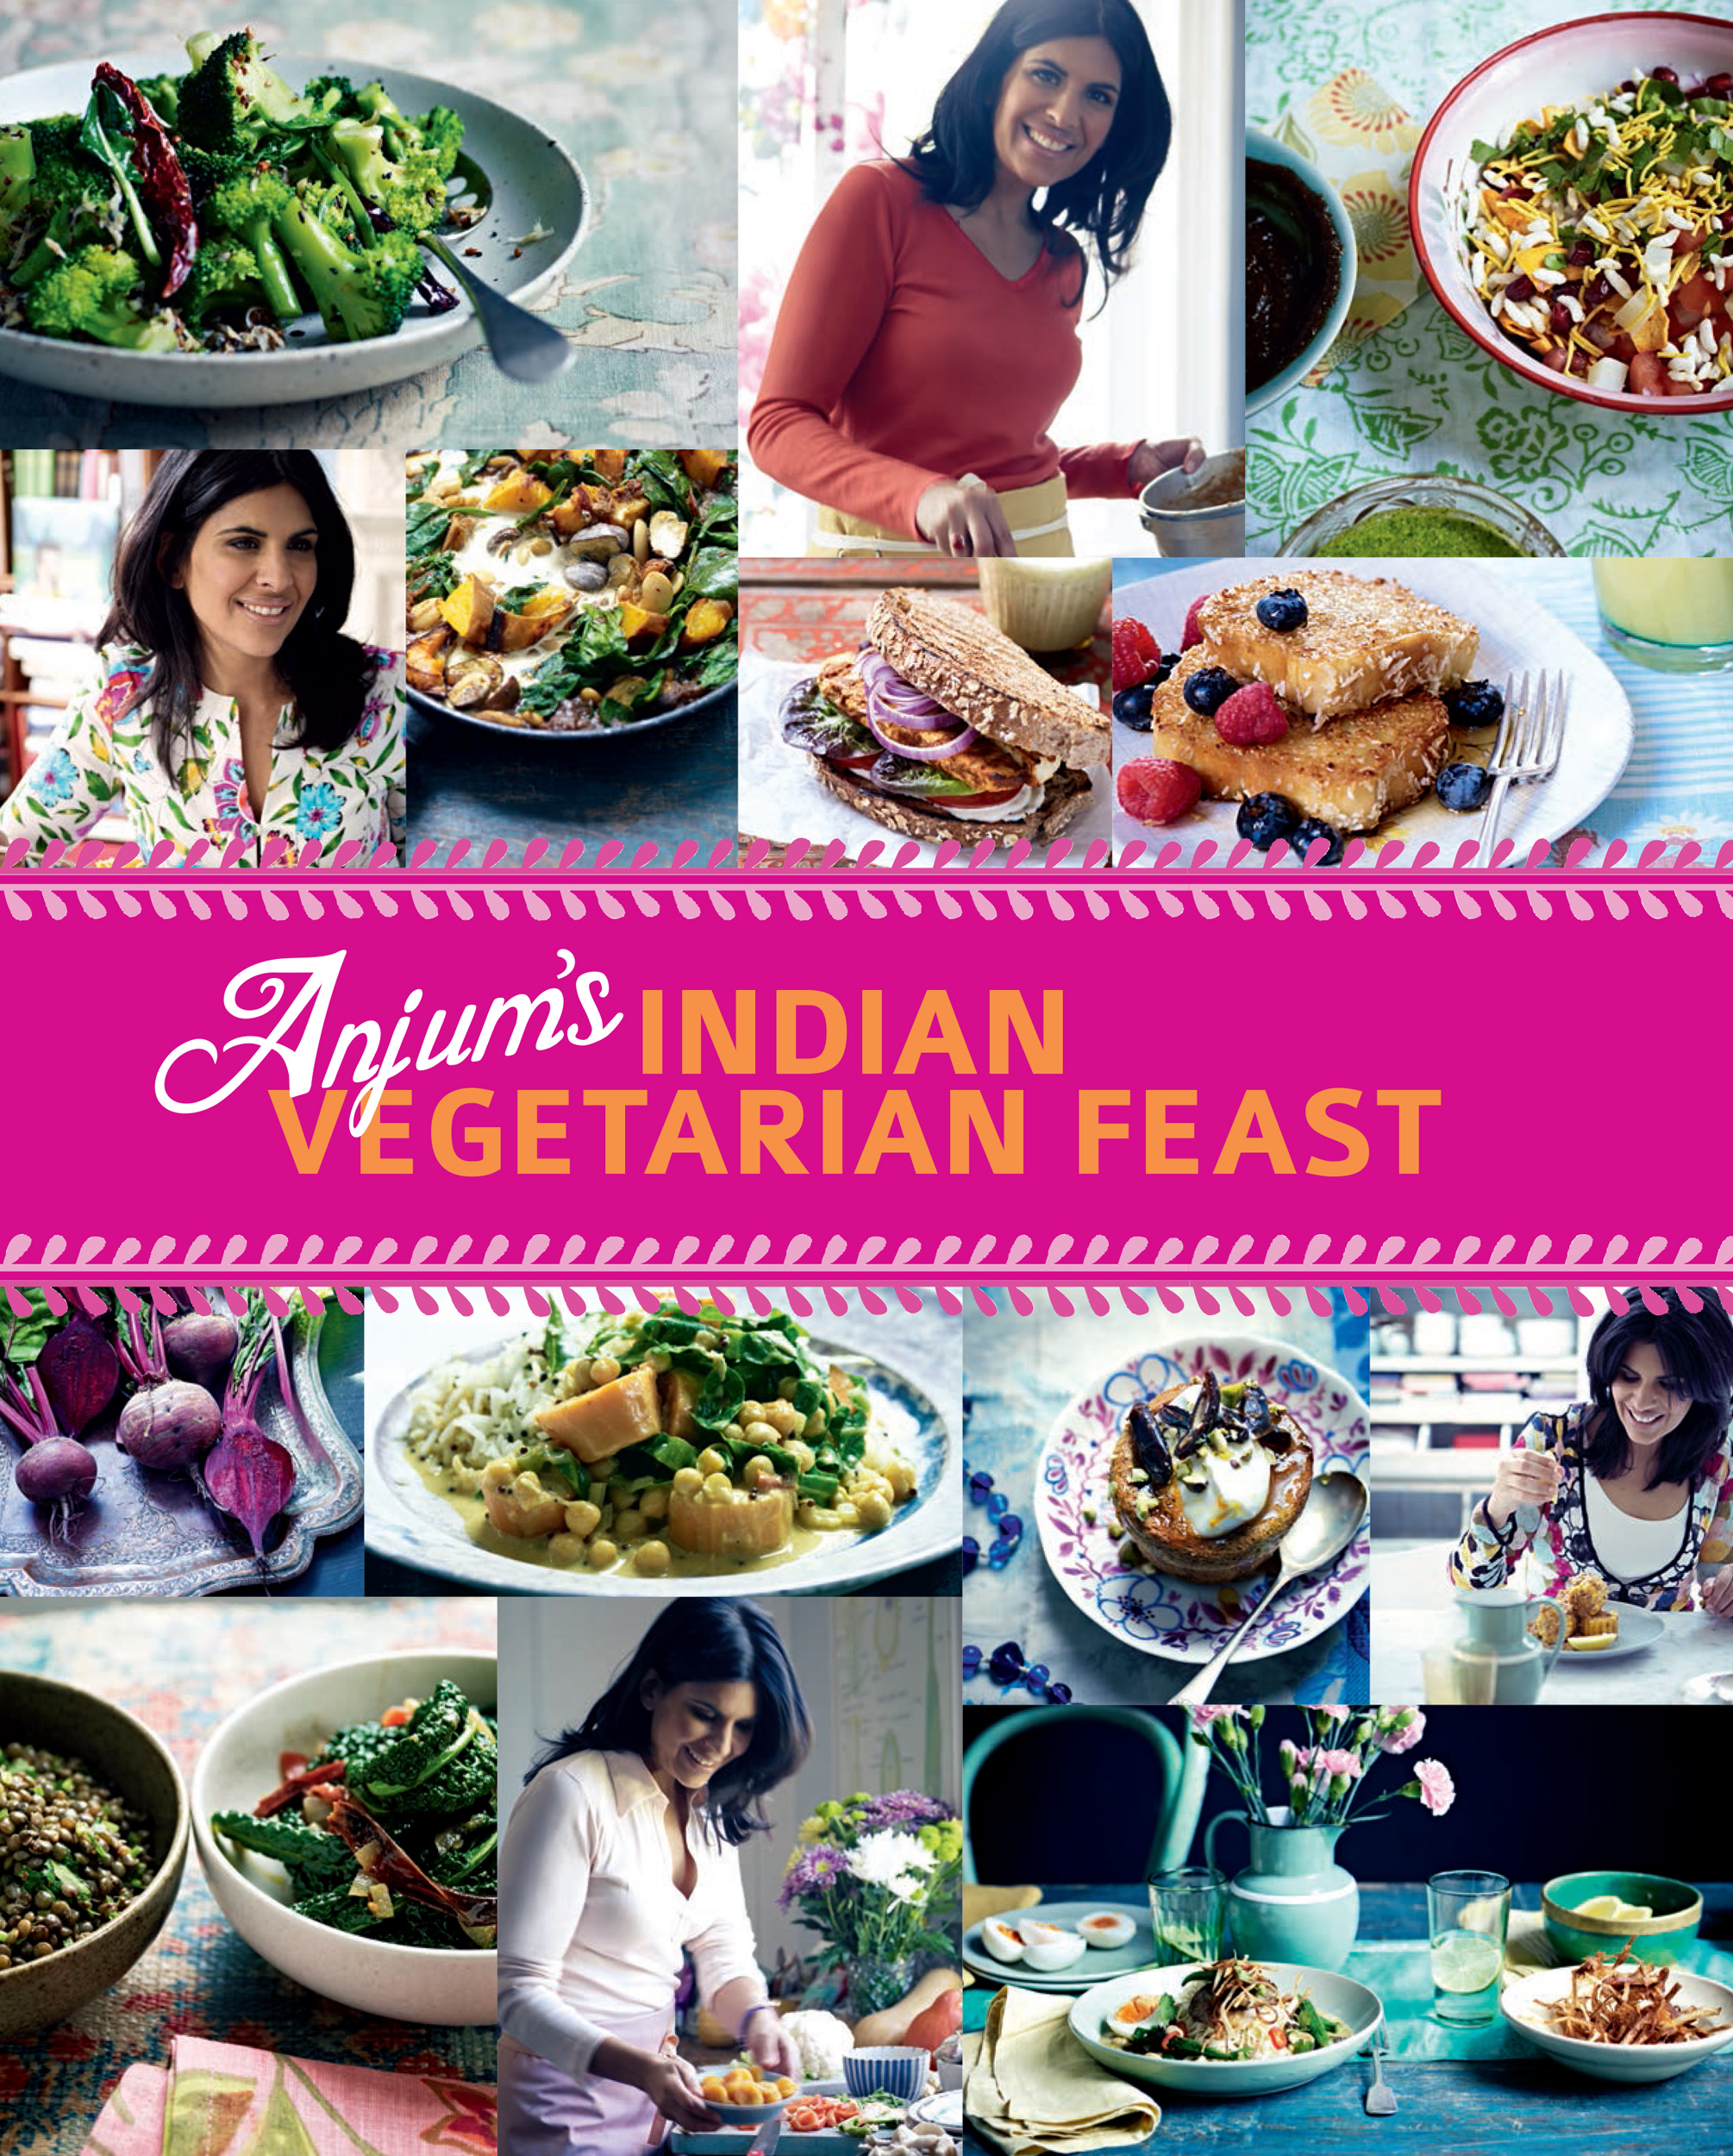 Anjum's Indian Vegetarian Feast